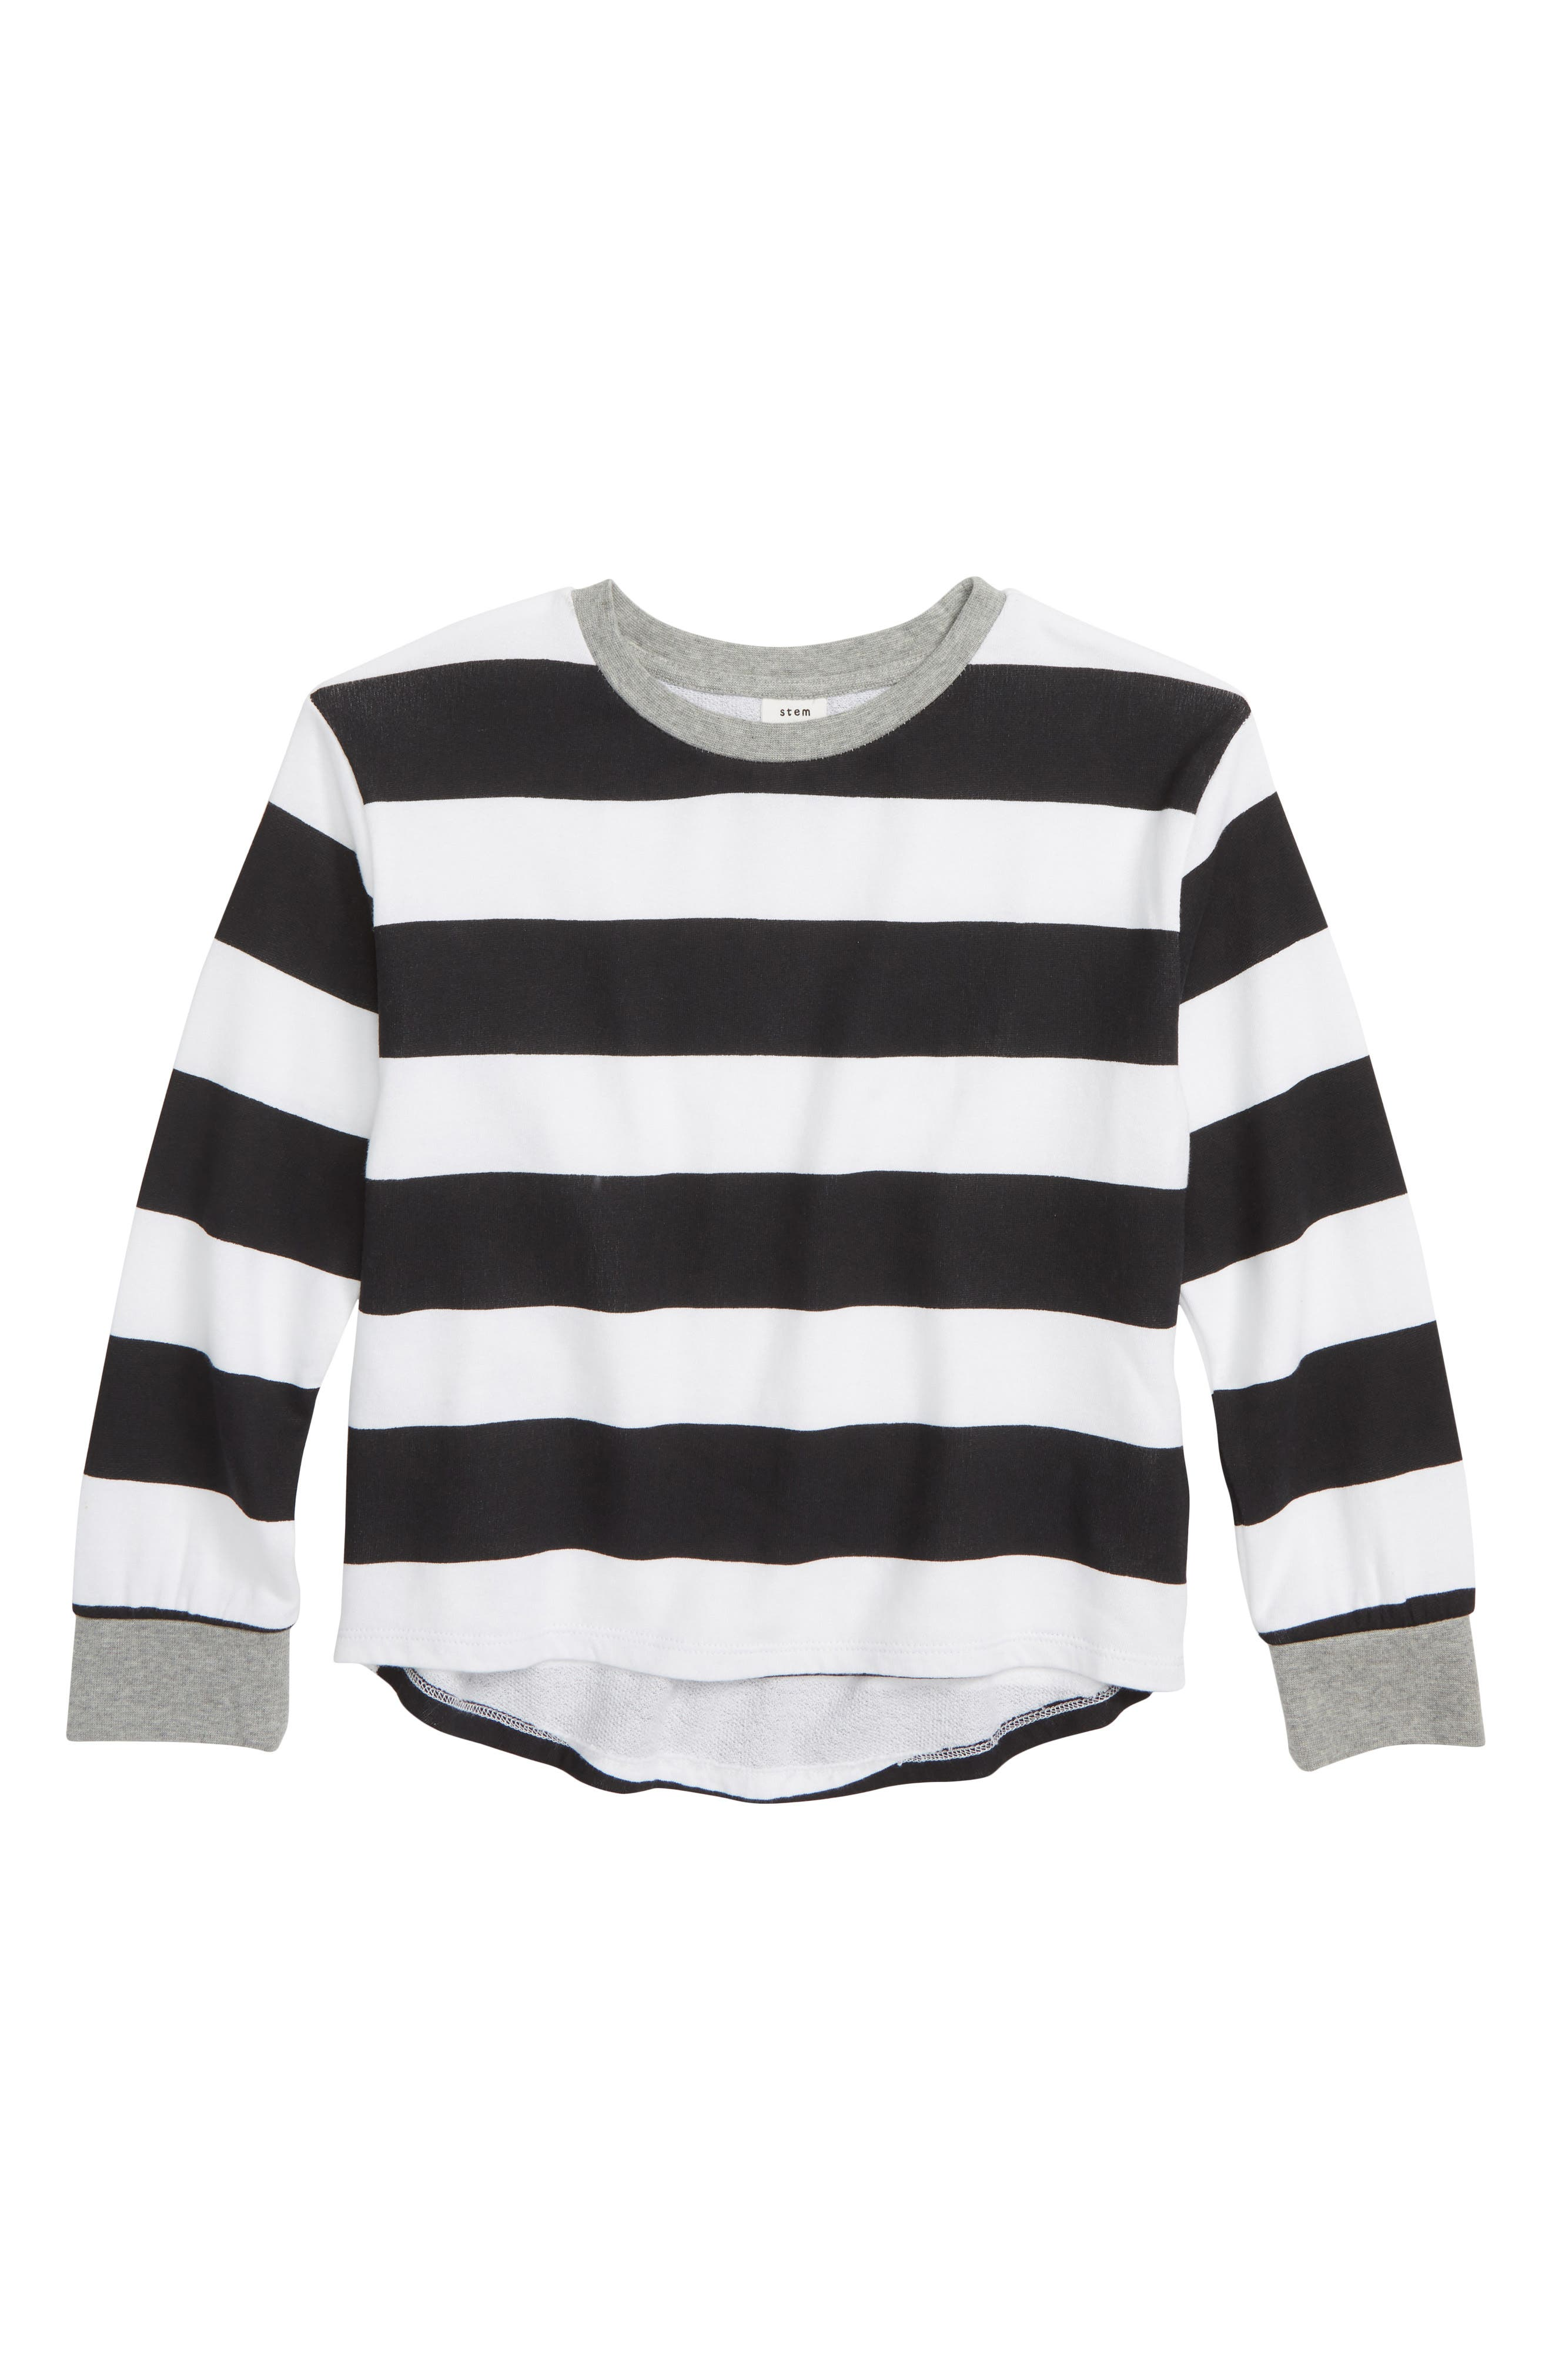 High/Low Sweatshirt,                             Main thumbnail 1, color,                             BLACK- WHITE STRIPE